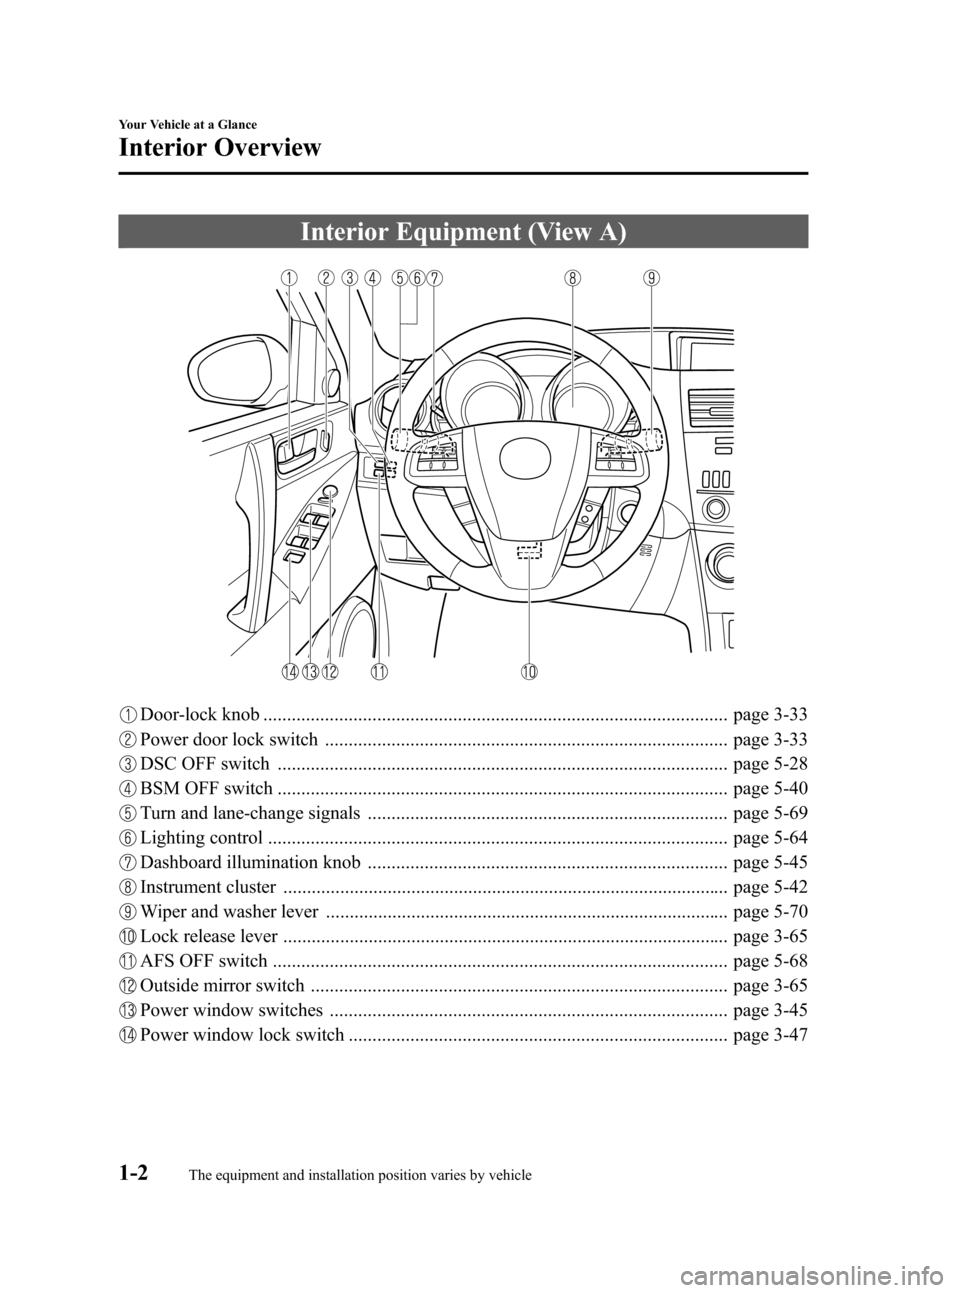 MAZDA MODEL 3 HATCHBACK 2012  Owners Manual (in English) Black plate (8,1) Interior Equipment (View A) Door-lock knob .................................................................................................. page 3-33 Power door lock switch .......